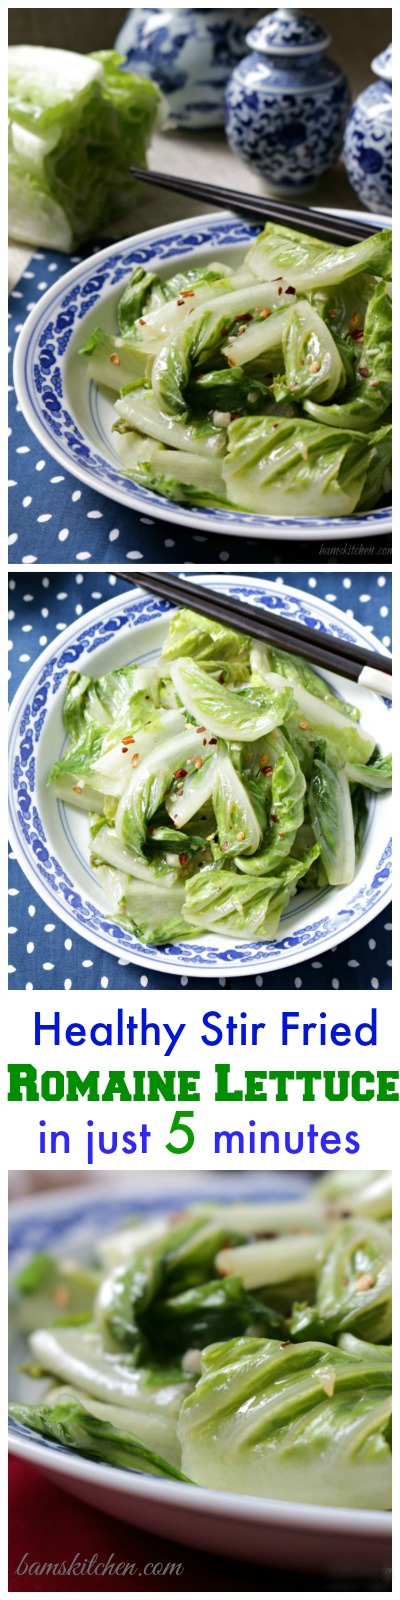 Healthy Stir Fried Romaine Lettuce / Bam's Kitchen/ httpbamskitchen.com